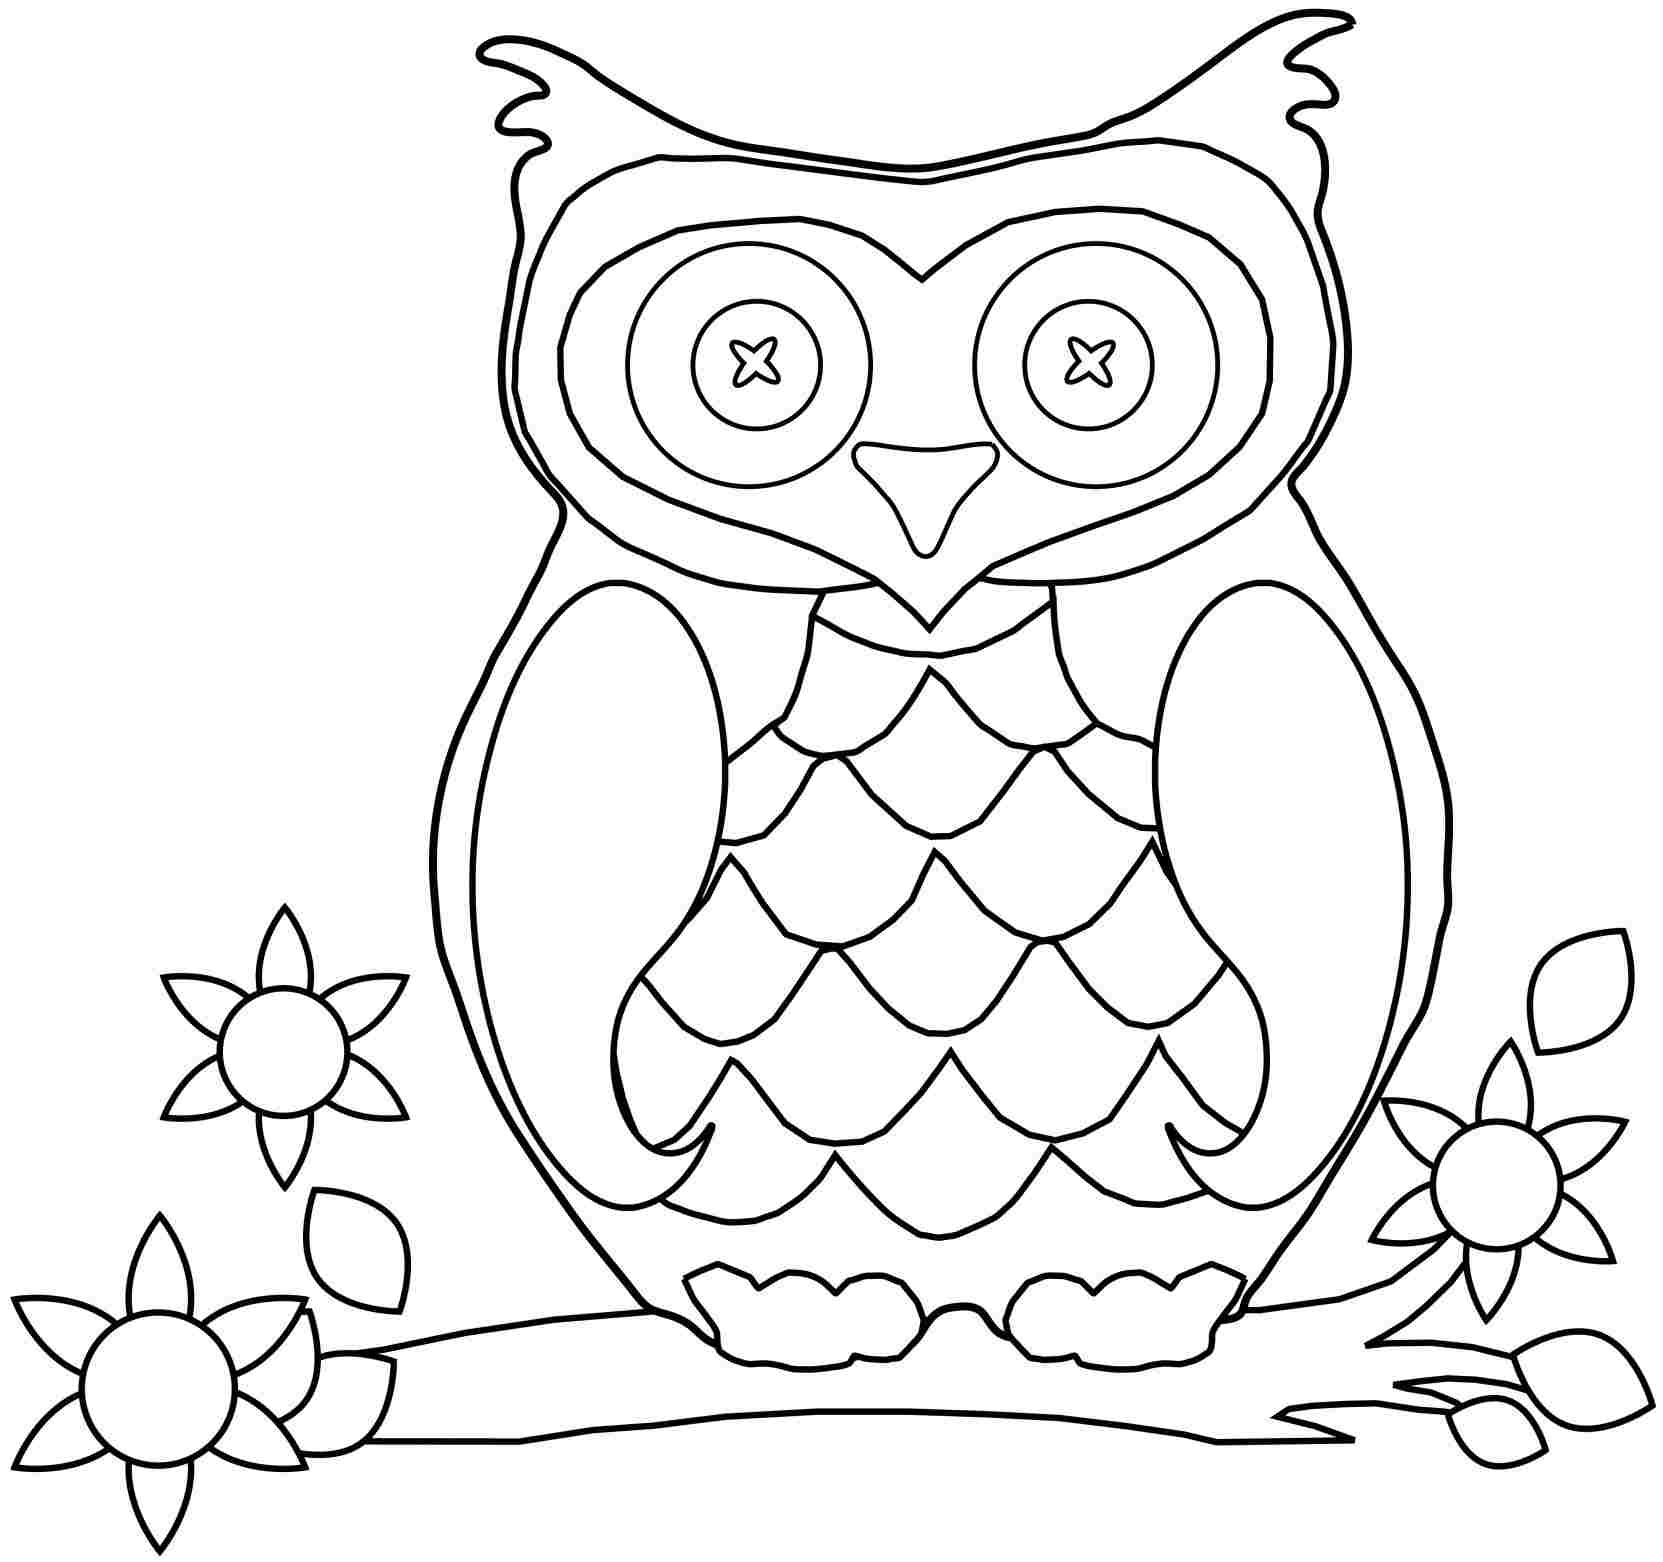 Adult Cute Printable Coloring Pages Of Owls Gallery Images cute owl coloring pages az 1000 ideas about on pinterest gallery images